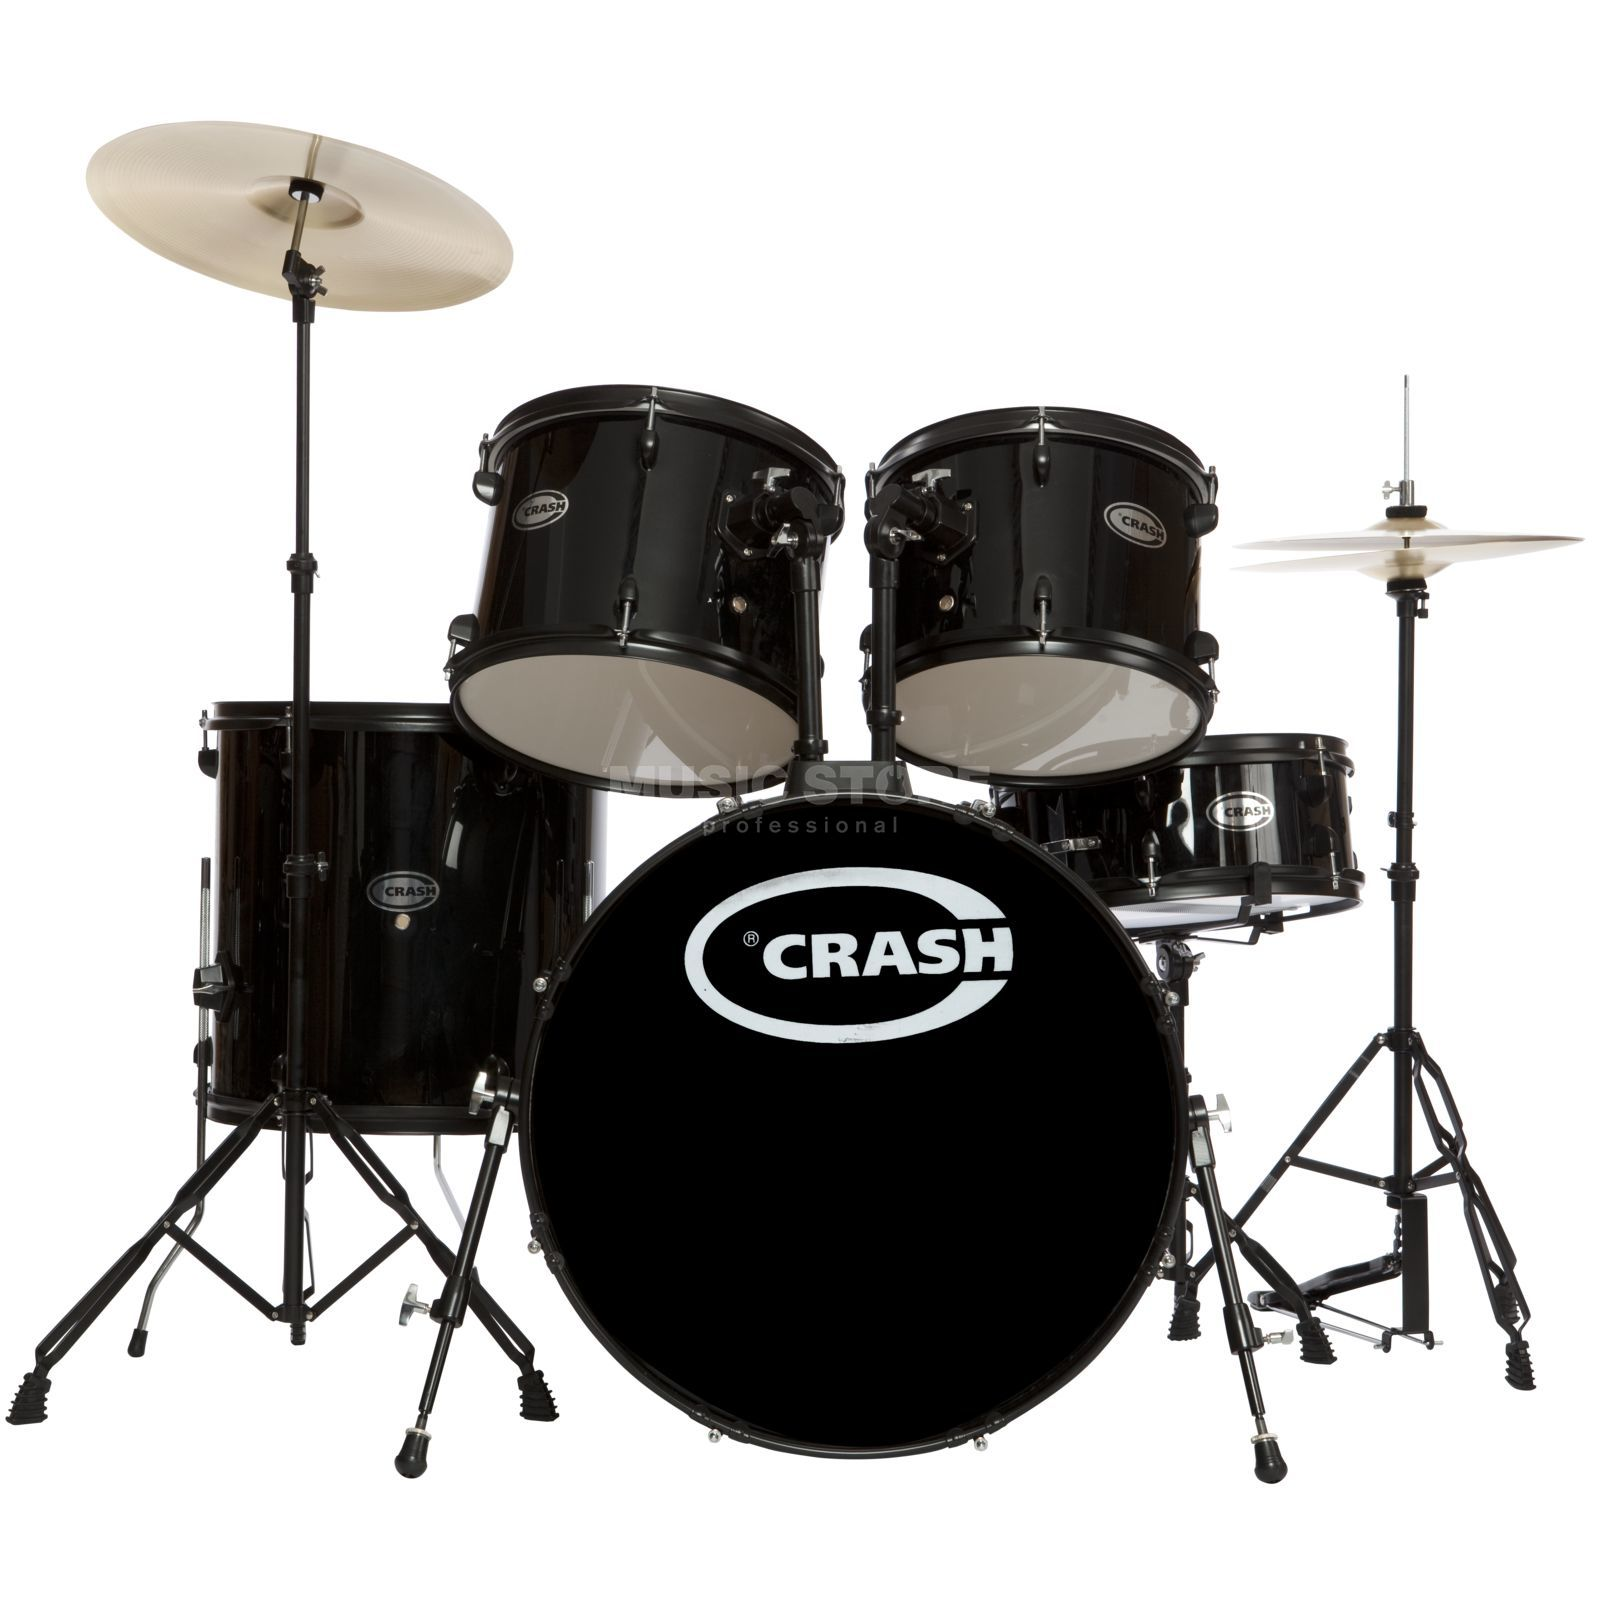 Crash Force Five DrumSet, Black, Black HW Produktbillede